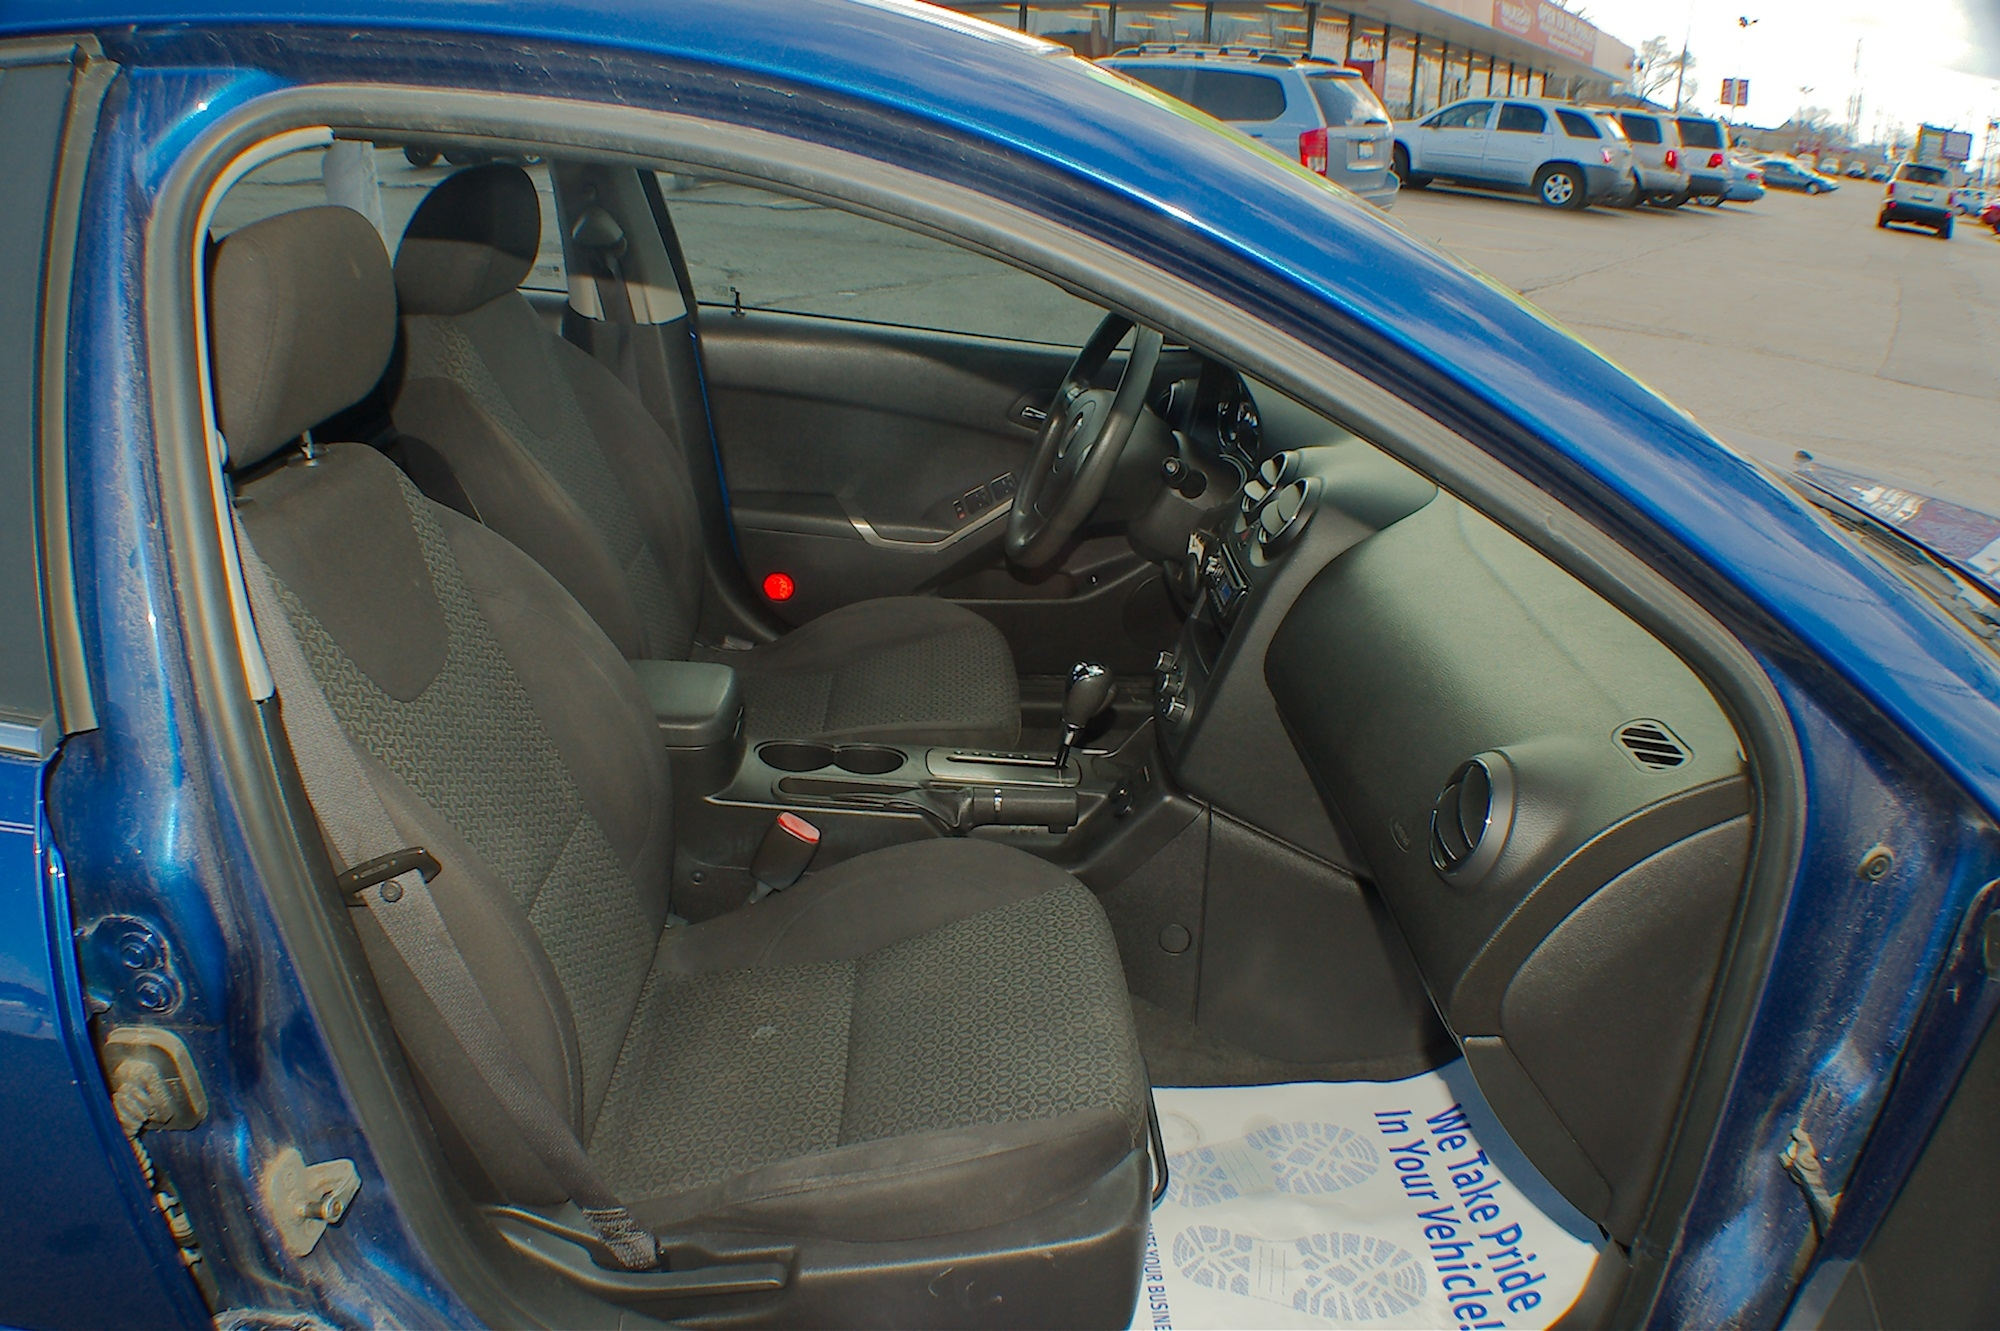 2007 Pontiac G6 Blue Sedan Used Car Sale Lake Villa Lake Zurich Lakemoor Milwaukee